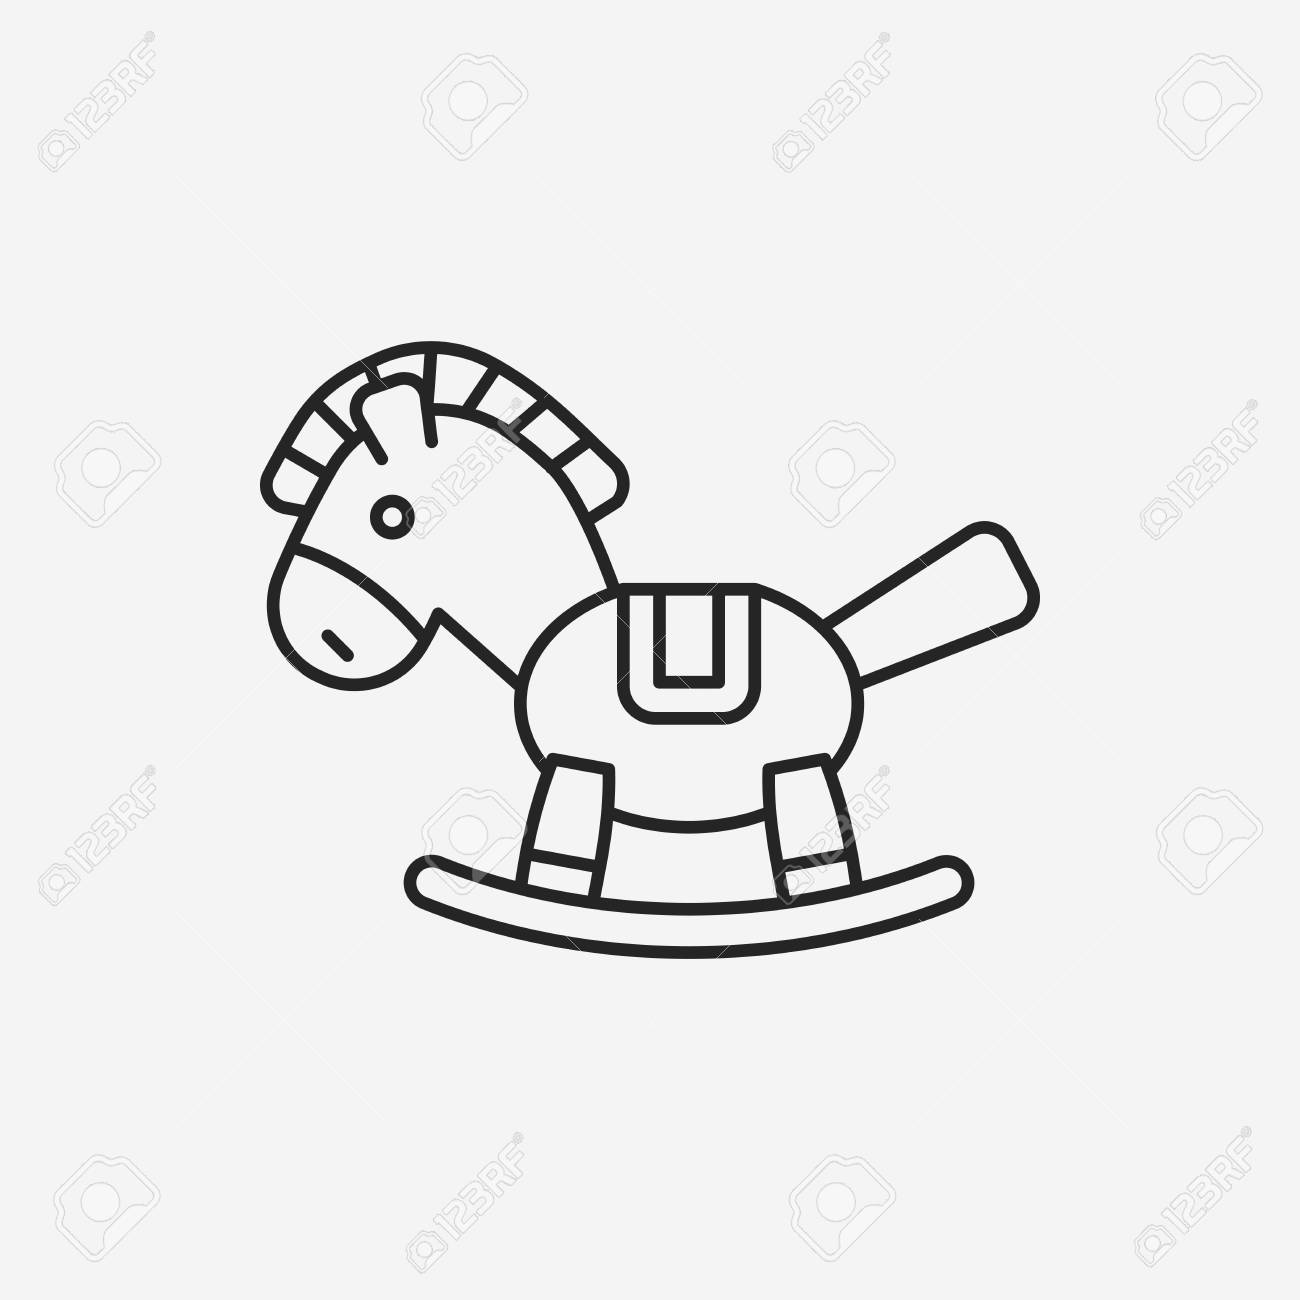 Baby Toy Horse Line Icon Royalty Free Cliparts Vectors And Stock Illustration Image 40650473